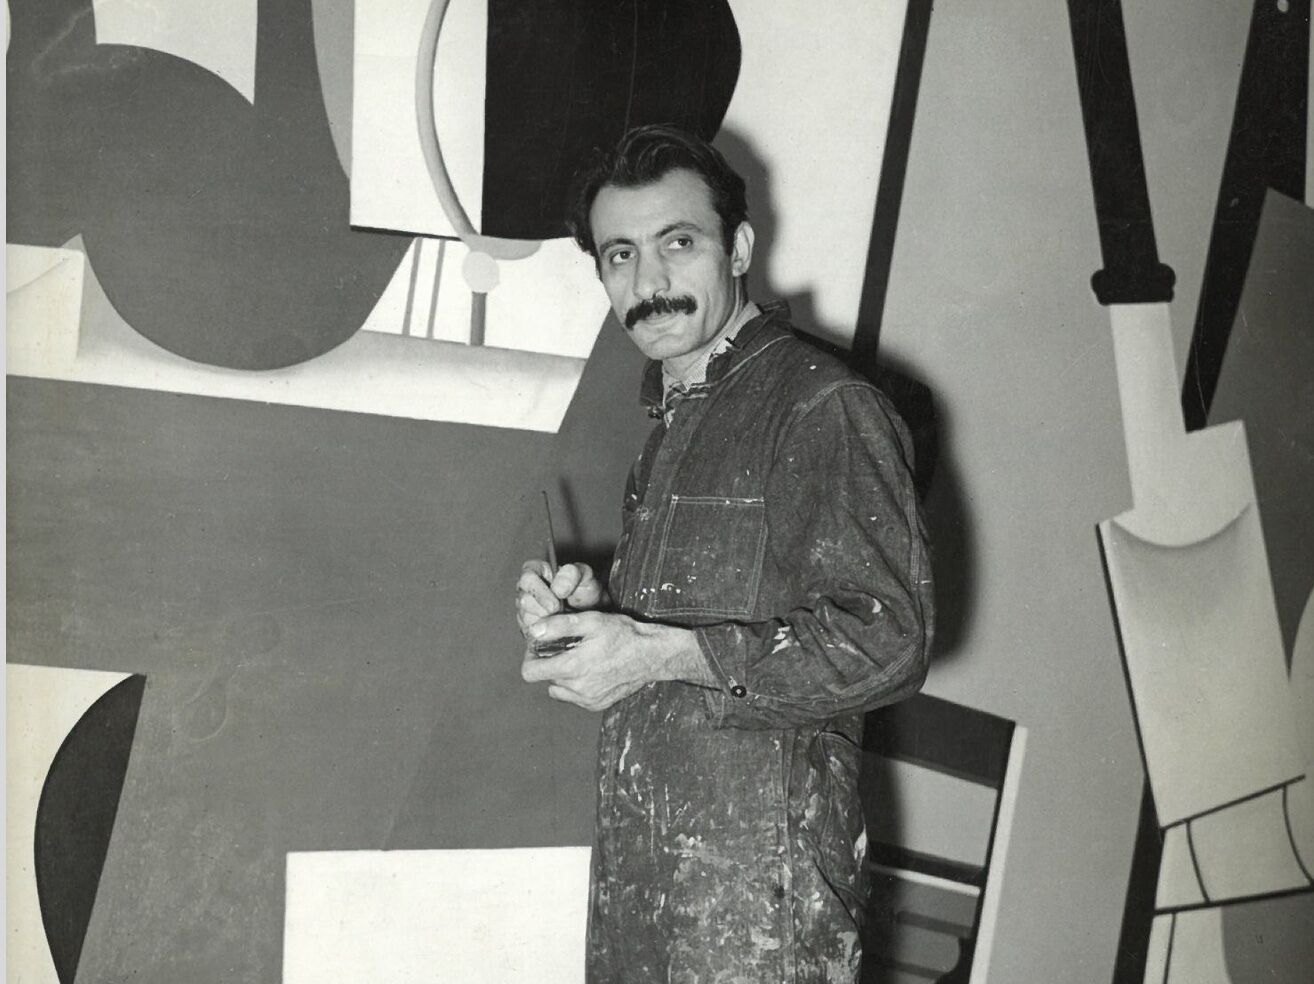 Painter Arshile Gorky standing in front of a mural.